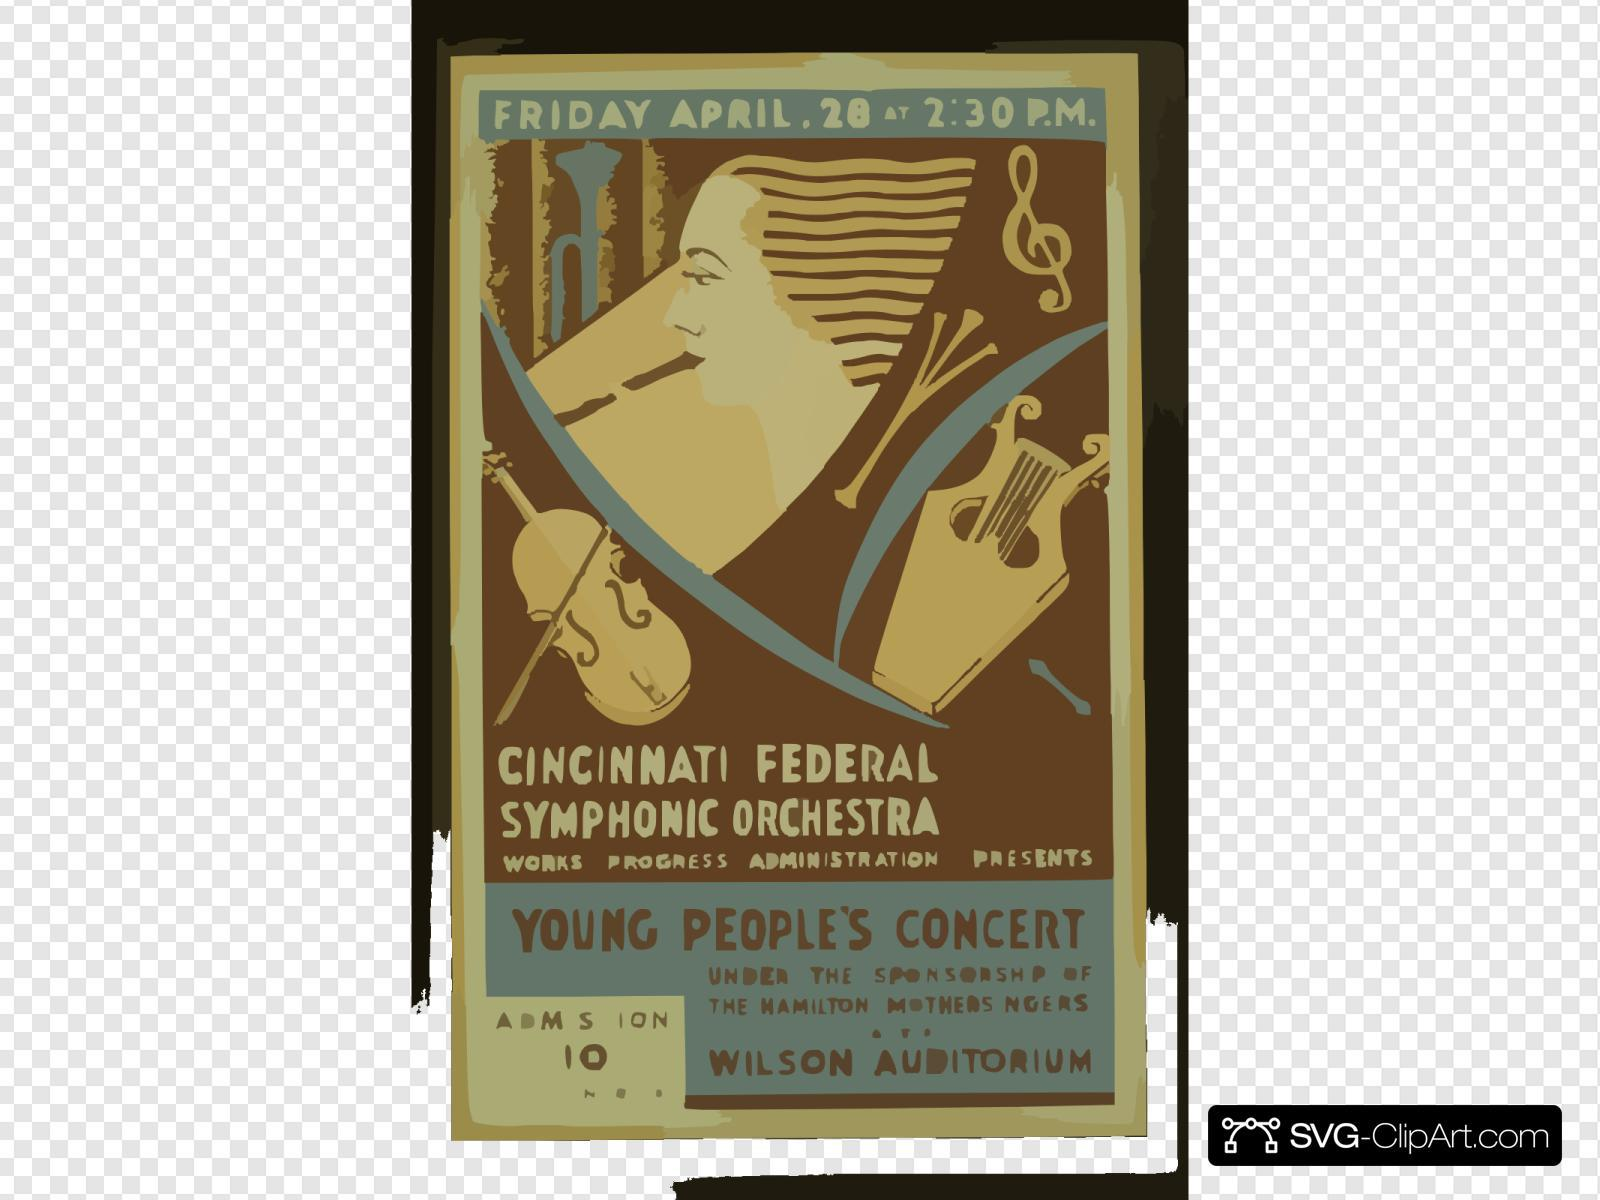 Cincinnati Federal Symphonic Orchestra, Works Progress Administration Presents Young People S Concert Under The Sponsorship Of The Hamilton Mothersingers At The Wilson Auditorium